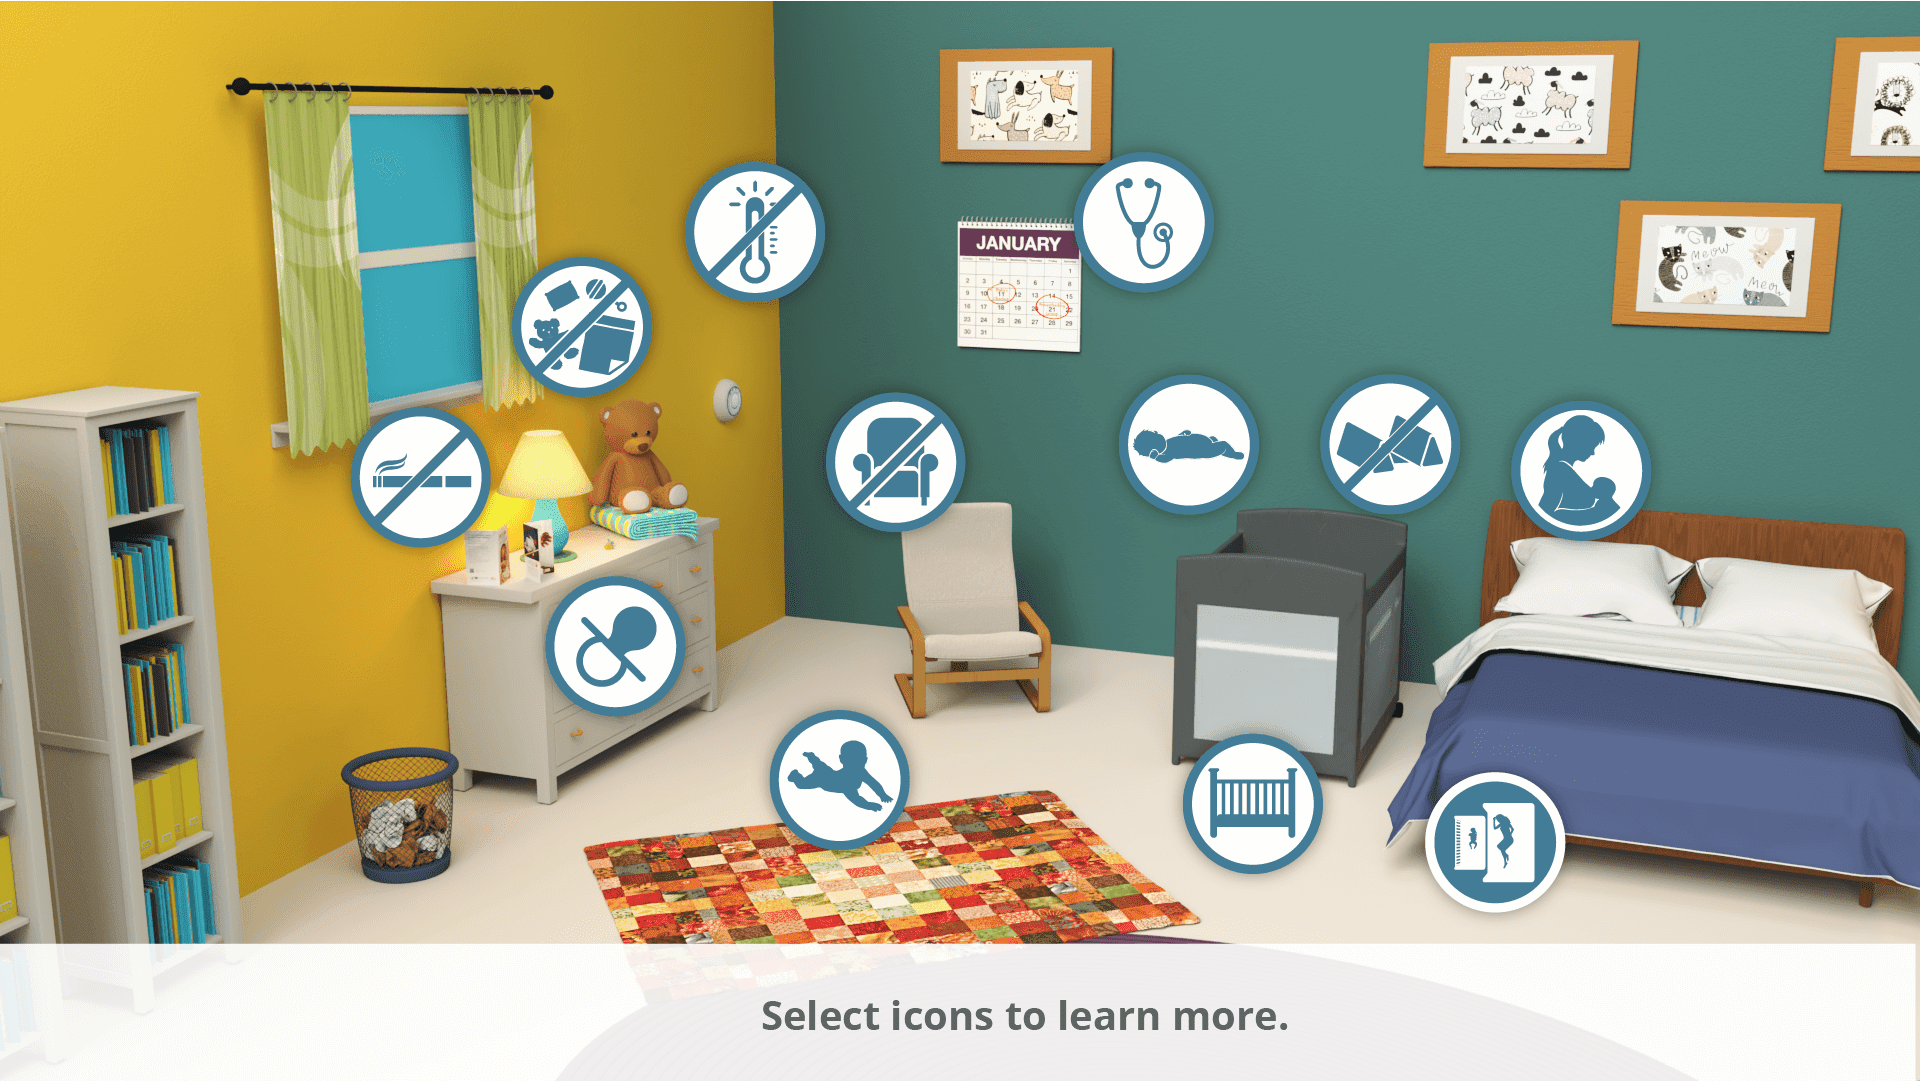 The interactive room shows an adult bedroom with icons showing different safe infant sleep recommendations.